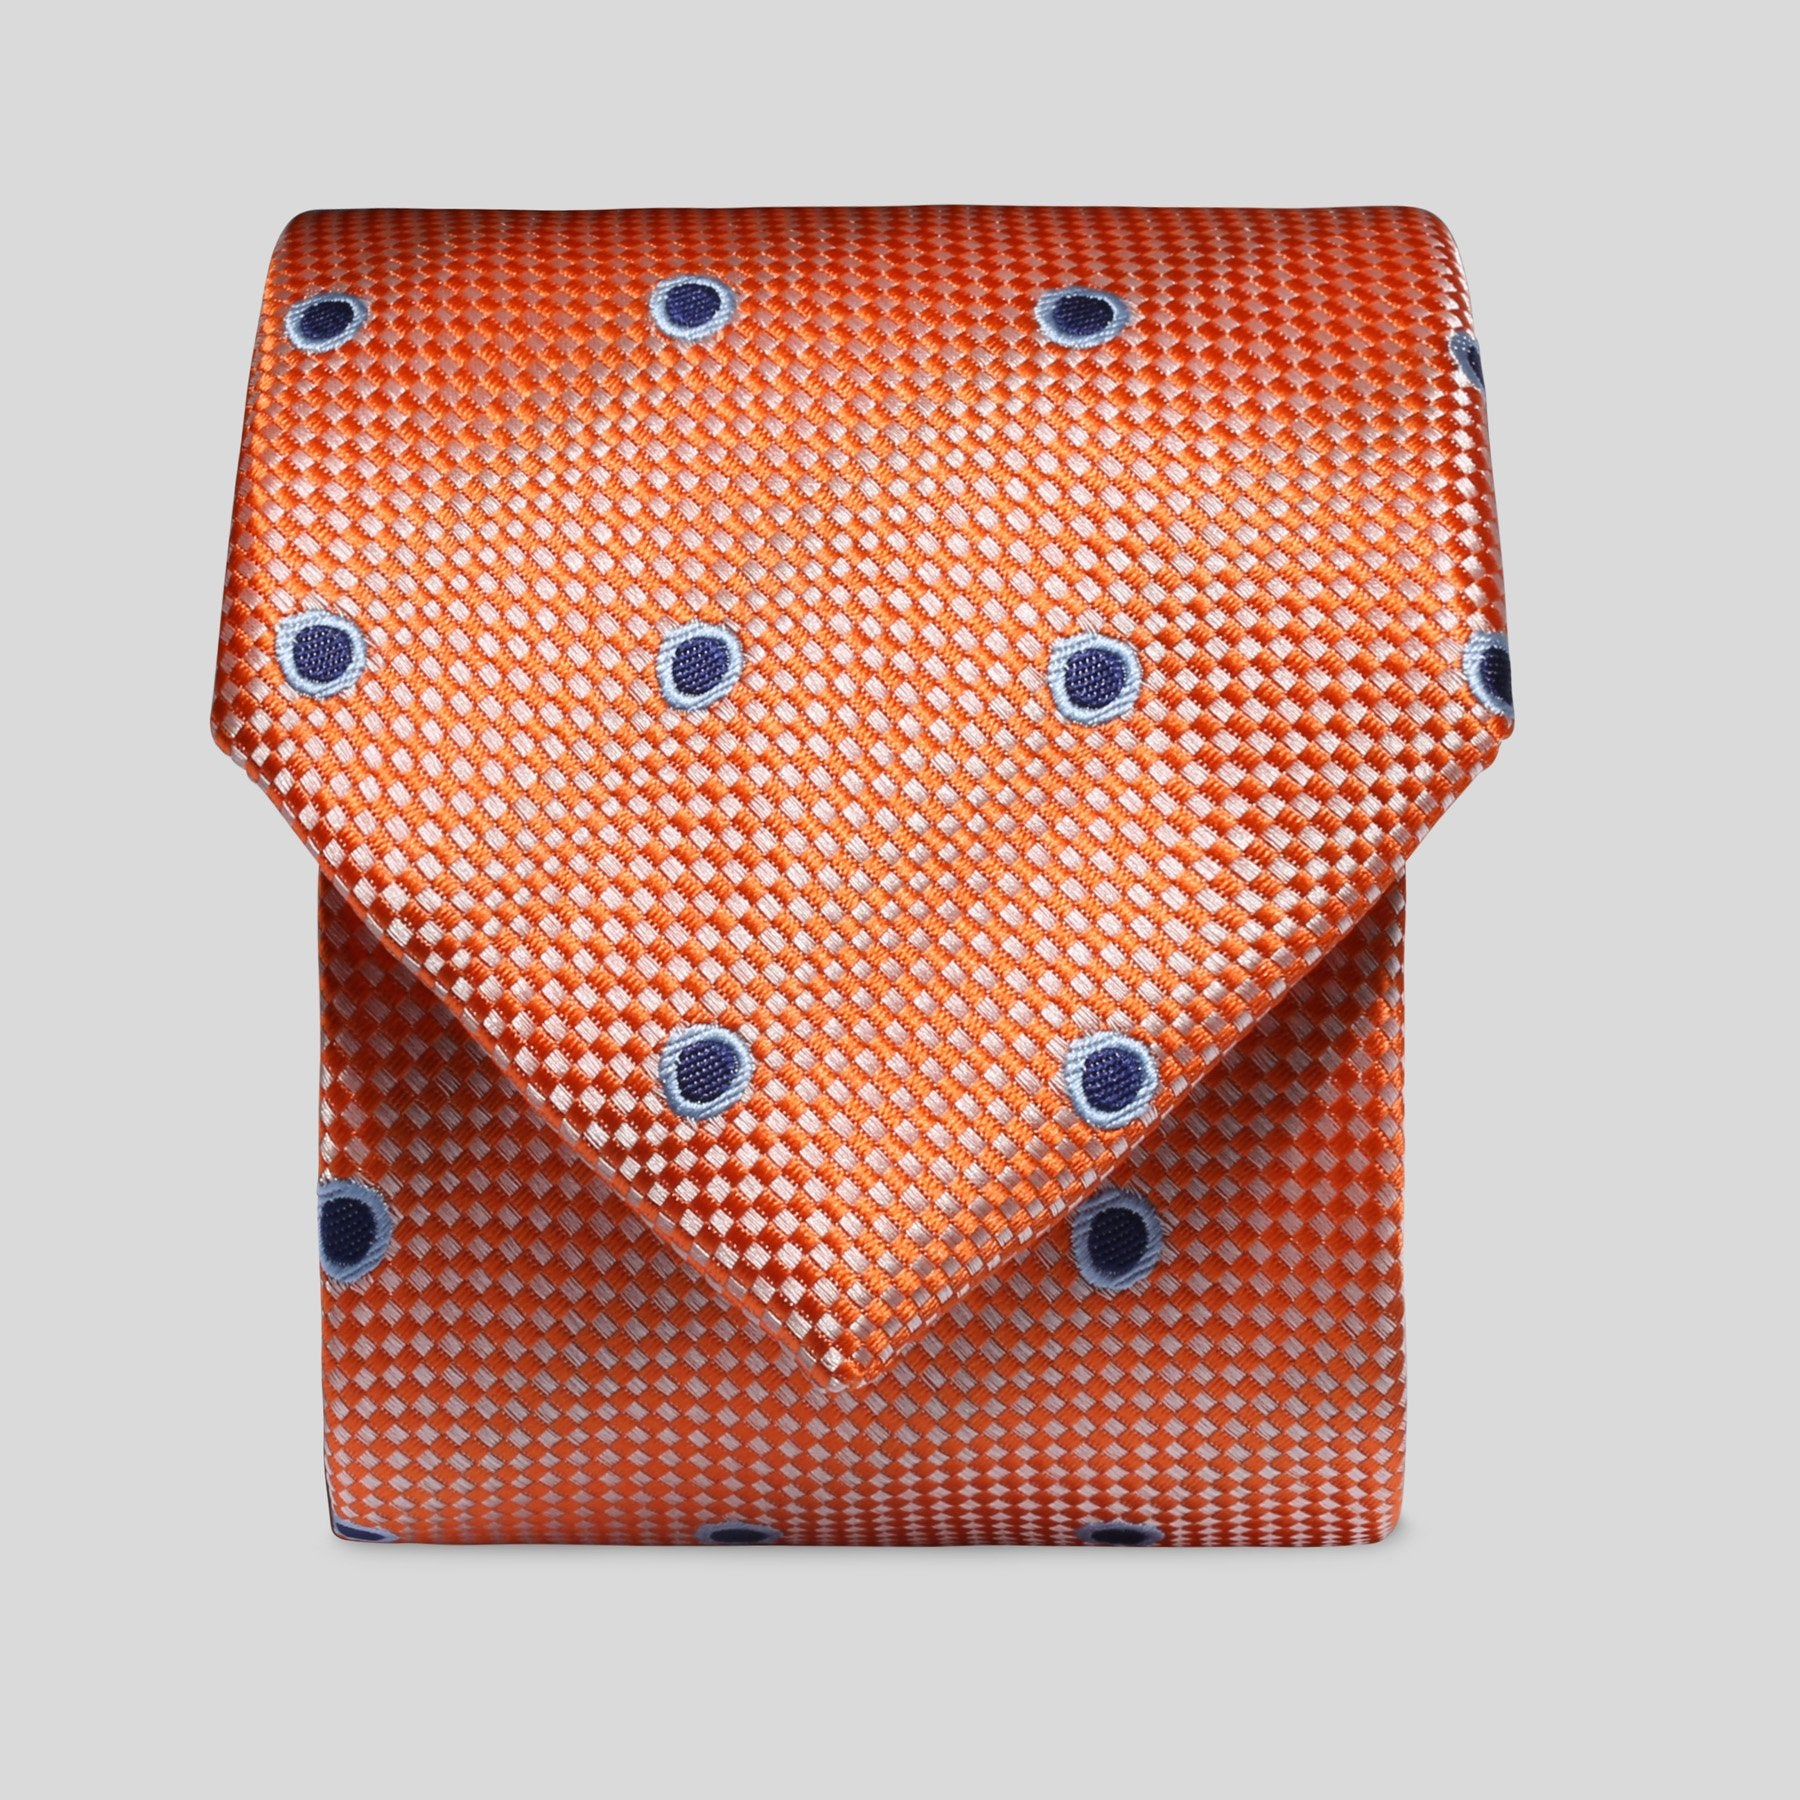 TM2798-02-Folkespeare-Bright-Orange-And-Navy-Wide-Spread-Polka-Dot-Classic-Tie-1